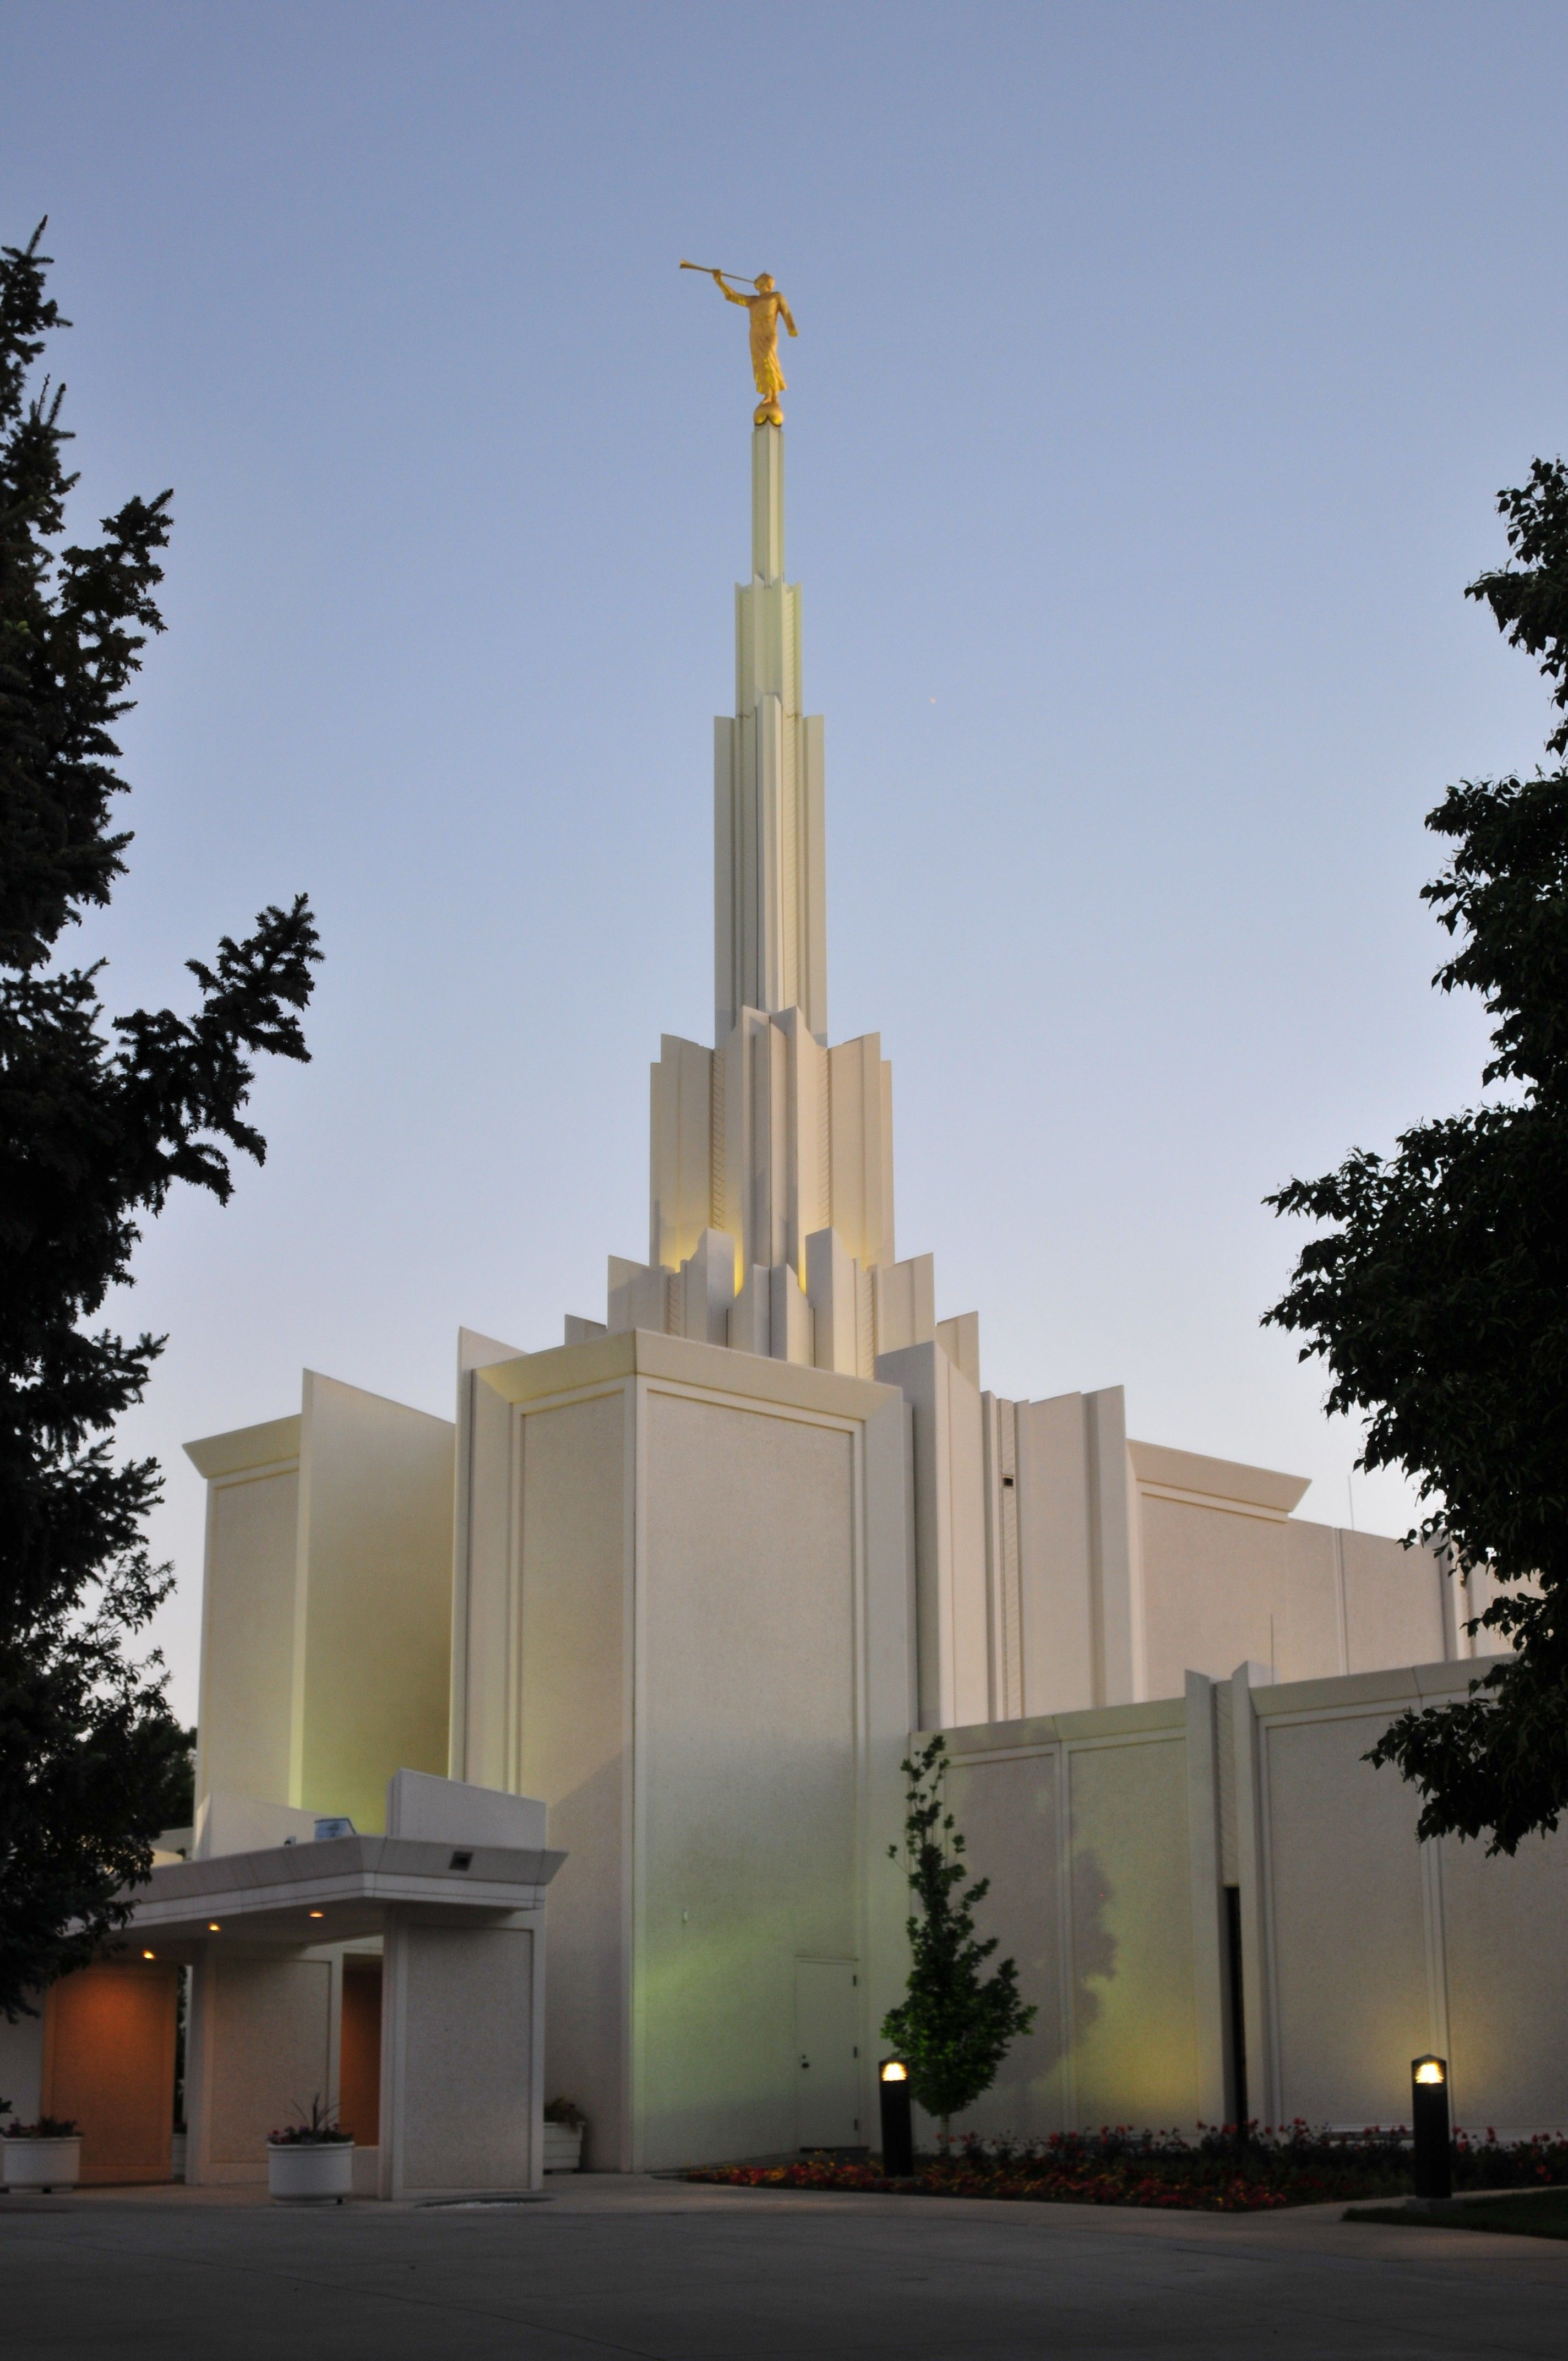 A portrait view of the Denver Colorado Temple lit up at night.